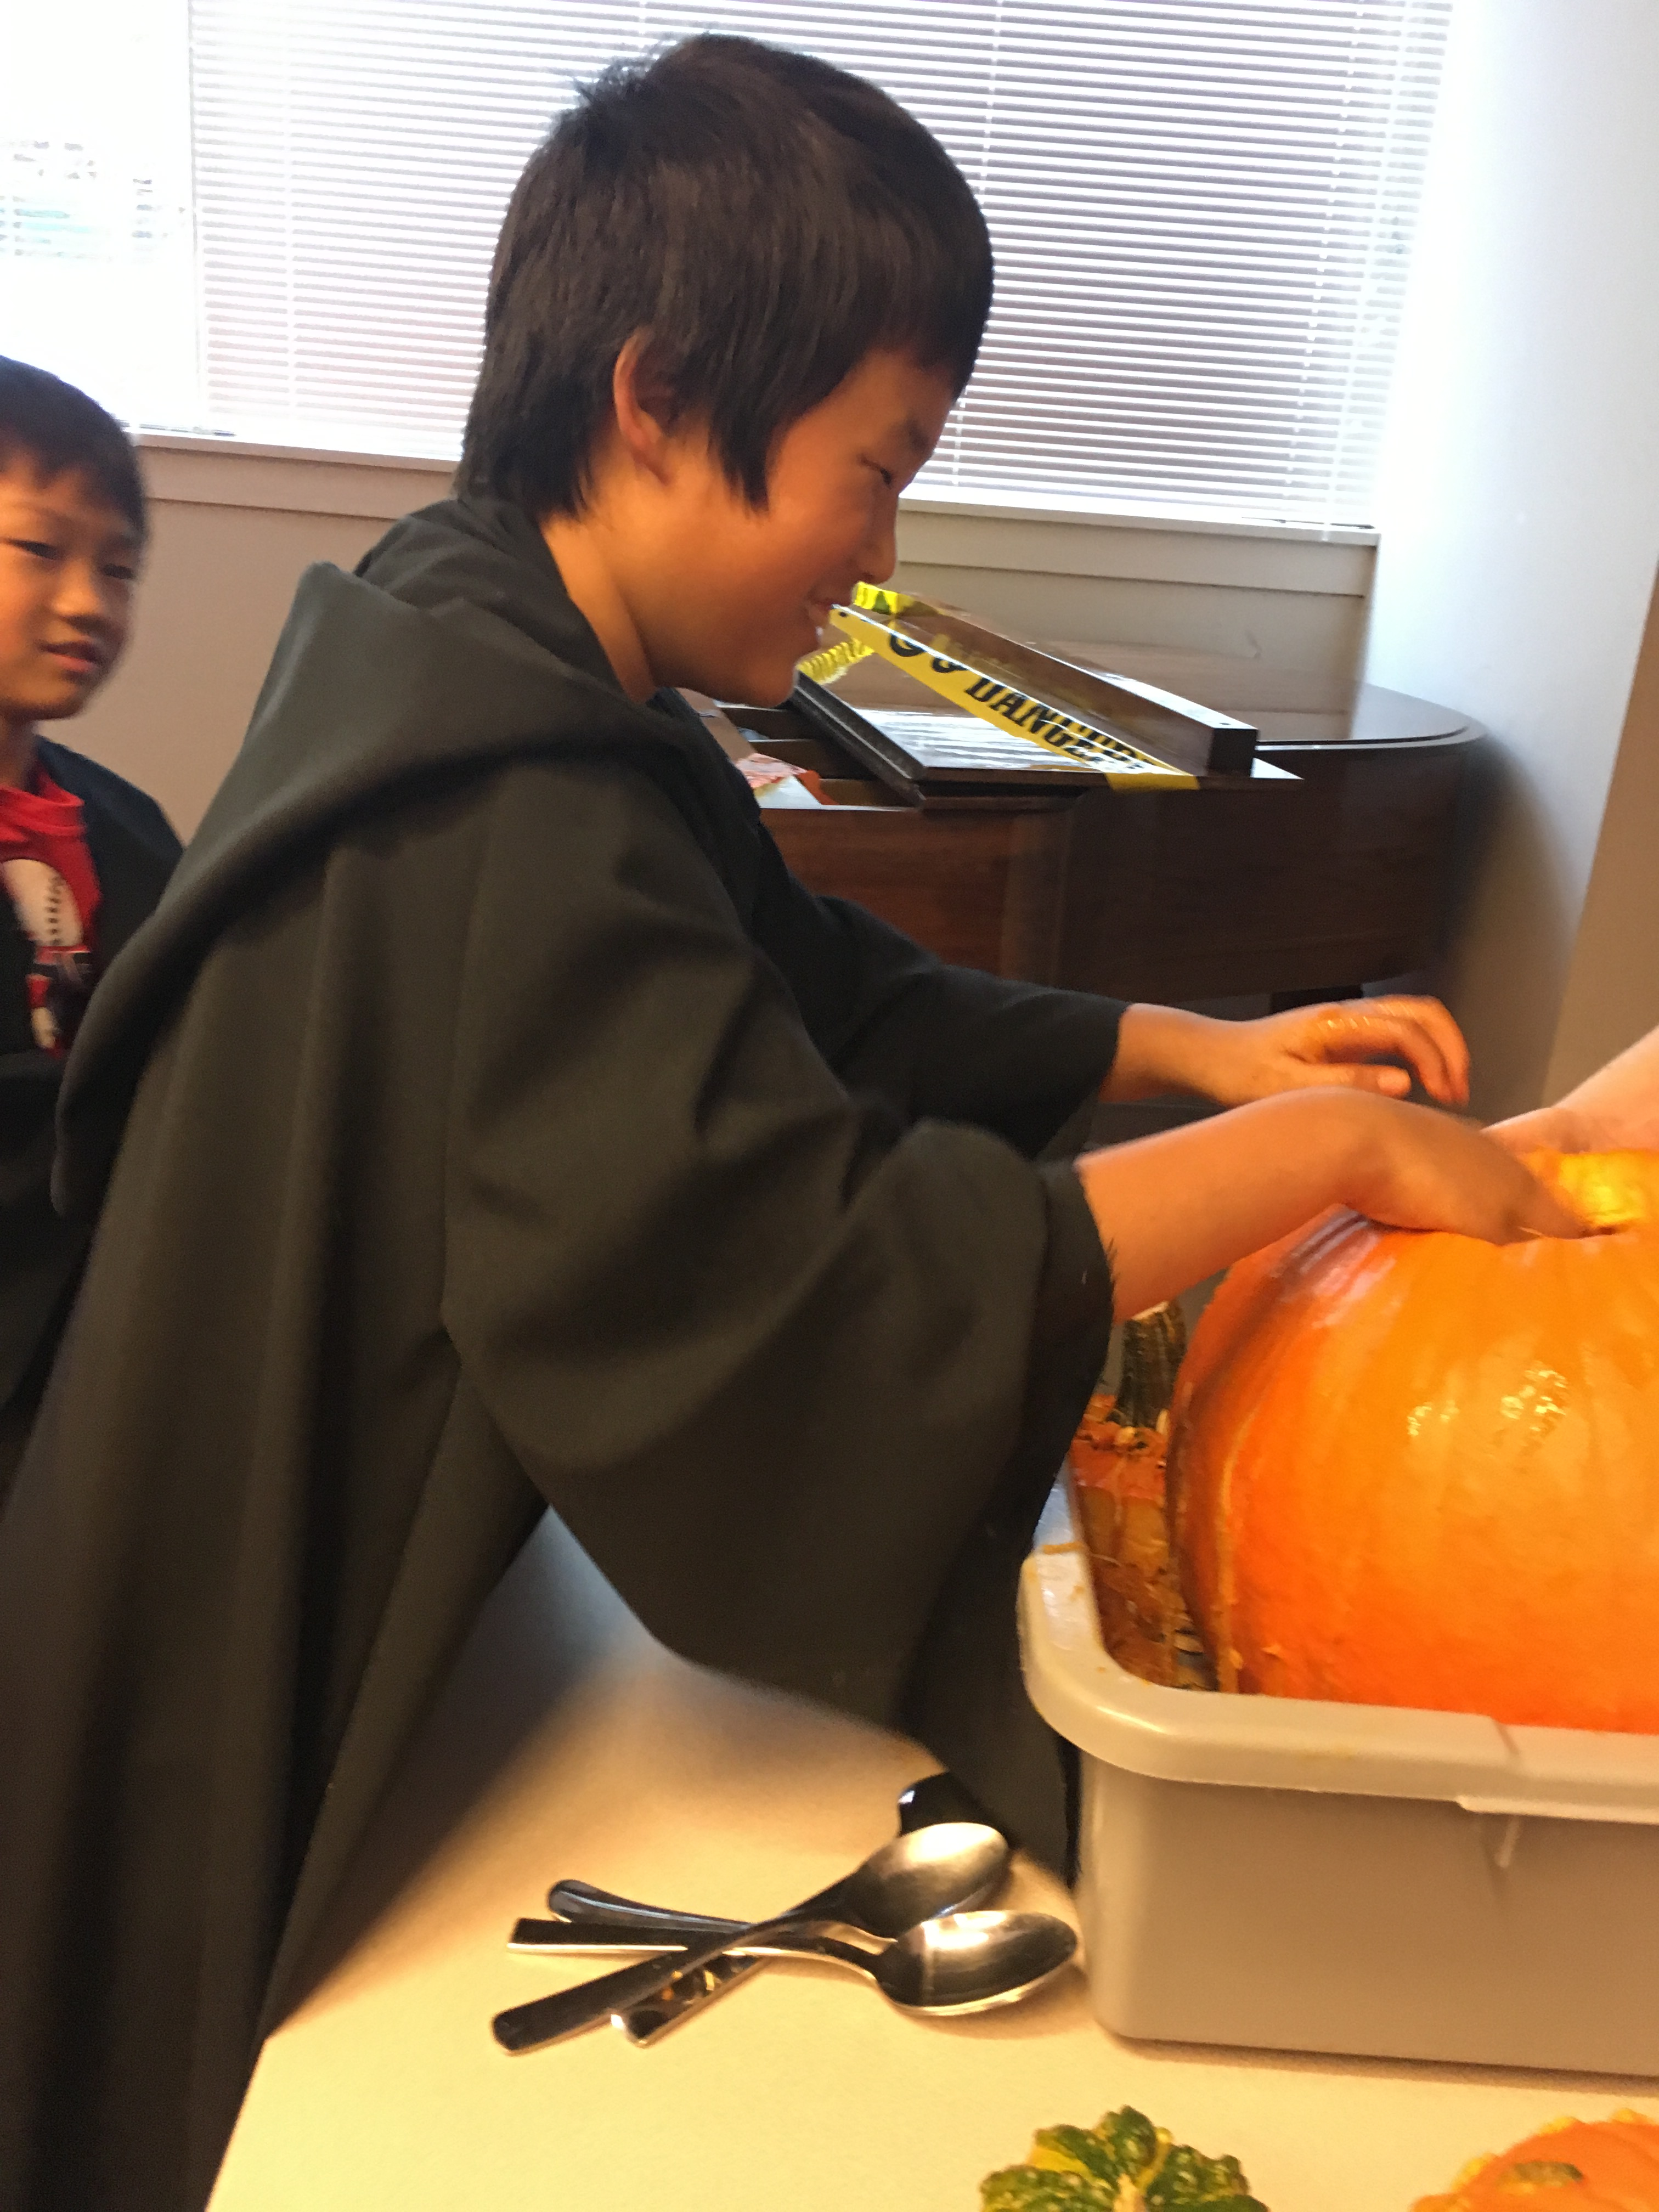 Two children in Hogwarts robes explore the insides of a large pumpkin.